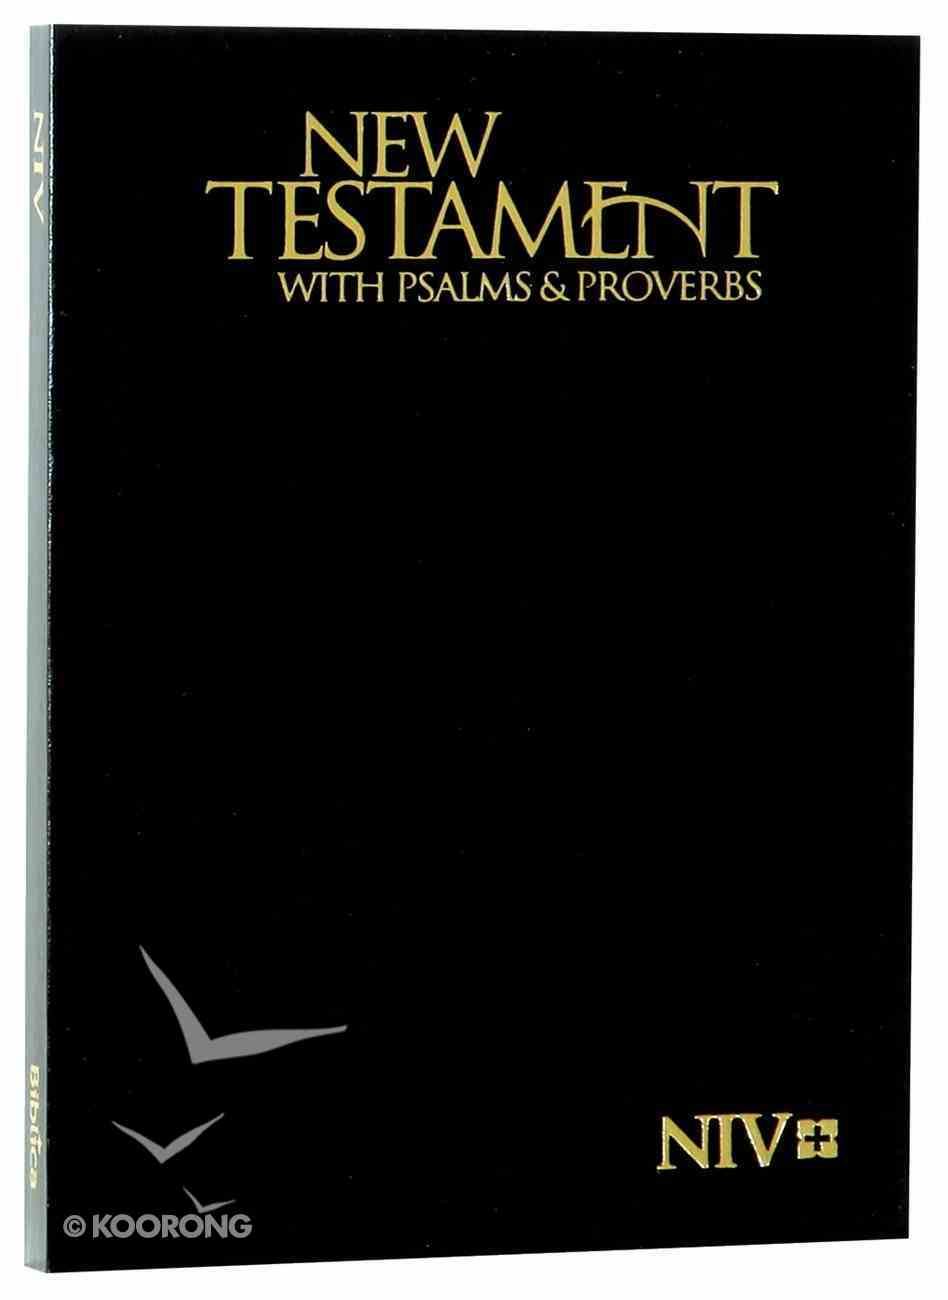 NIV Pocket New Testament With Psalms & Proverbs Black (Black Letter Edition) Paperback